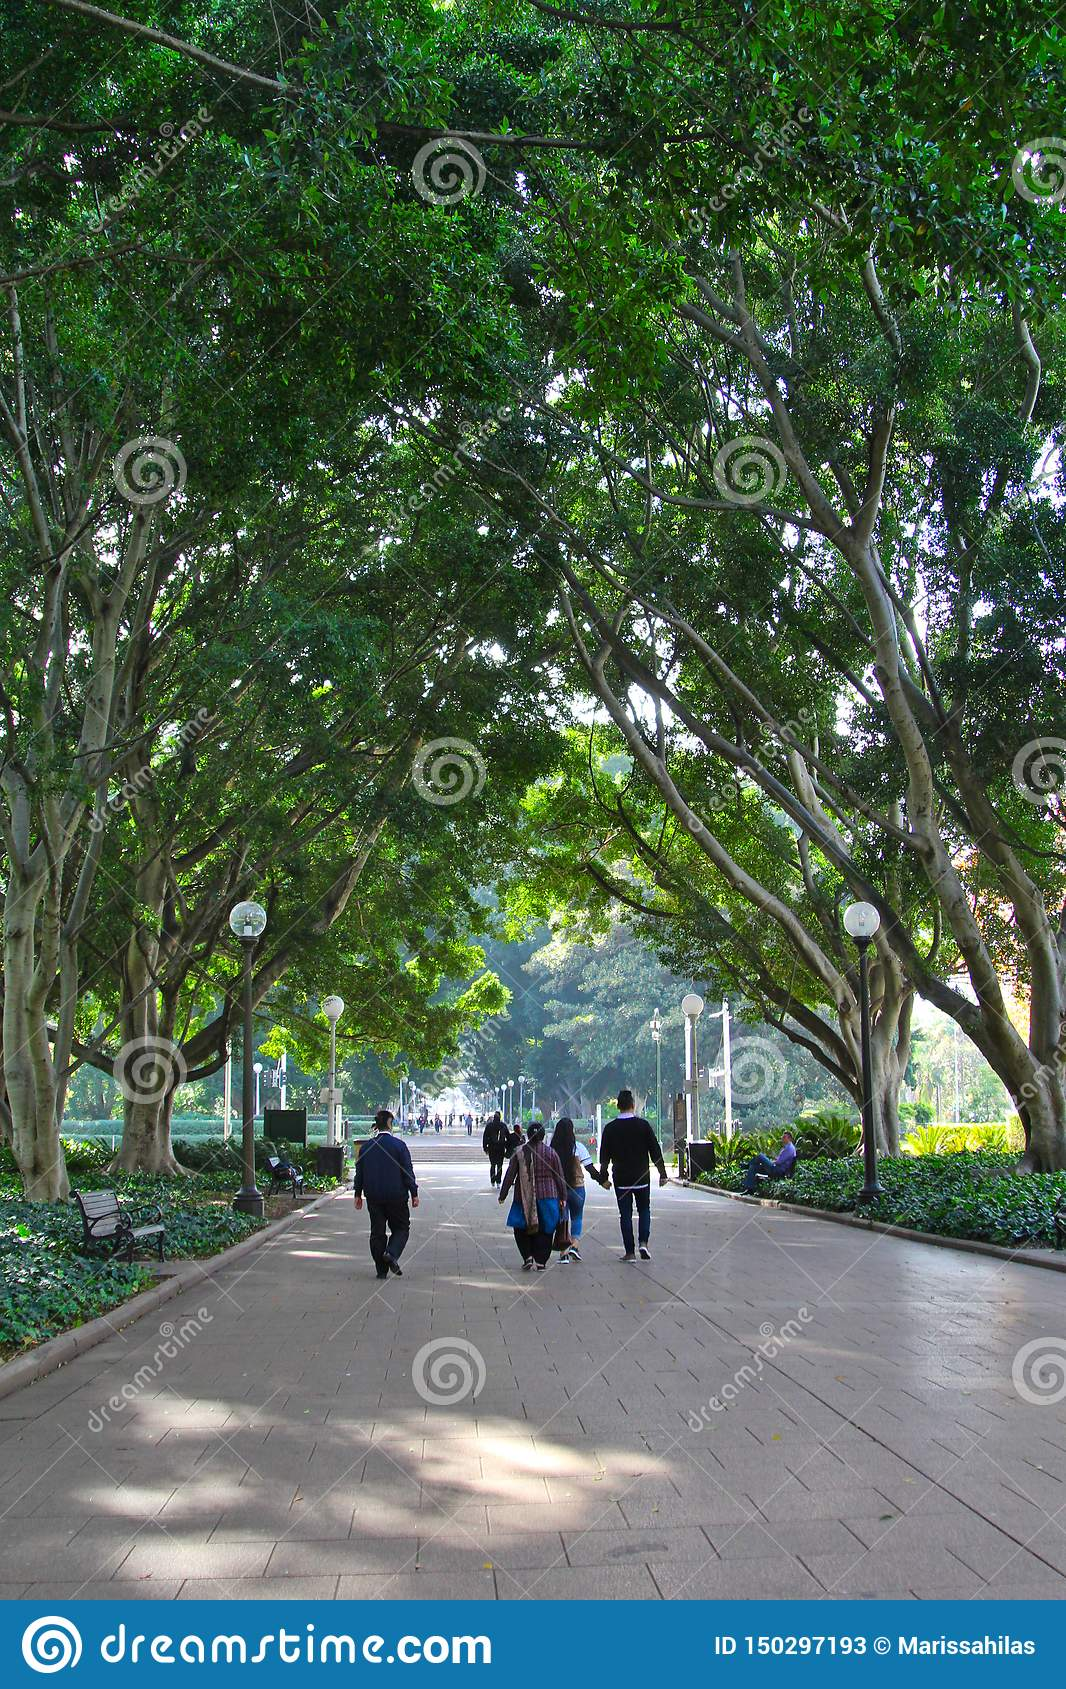 A peaceful view of Hyde Park Sydney